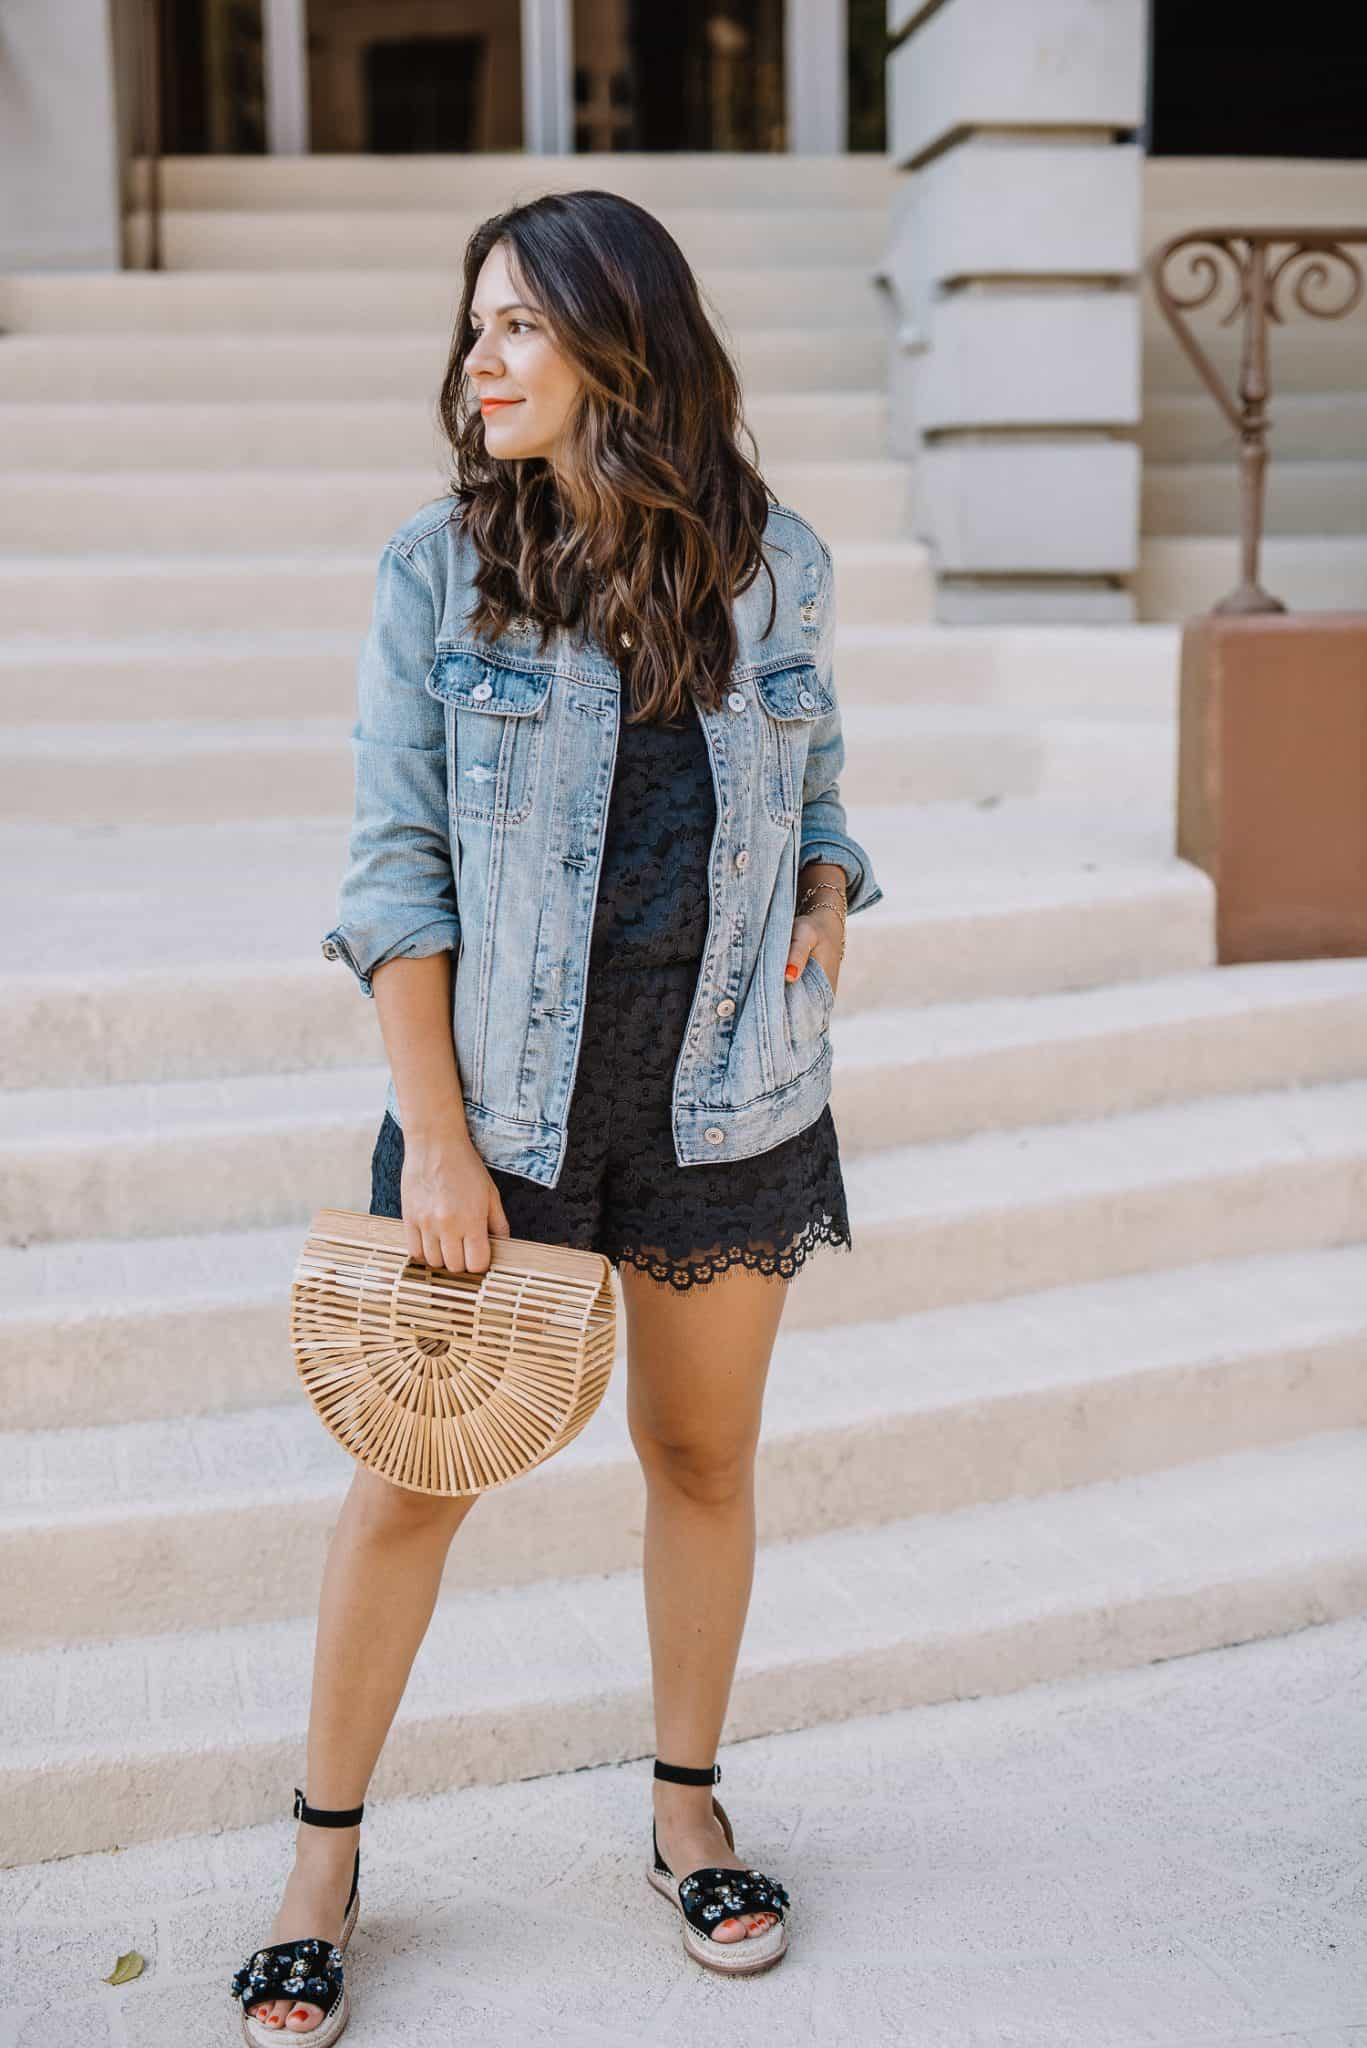 Black Romper - A Summer Outfit